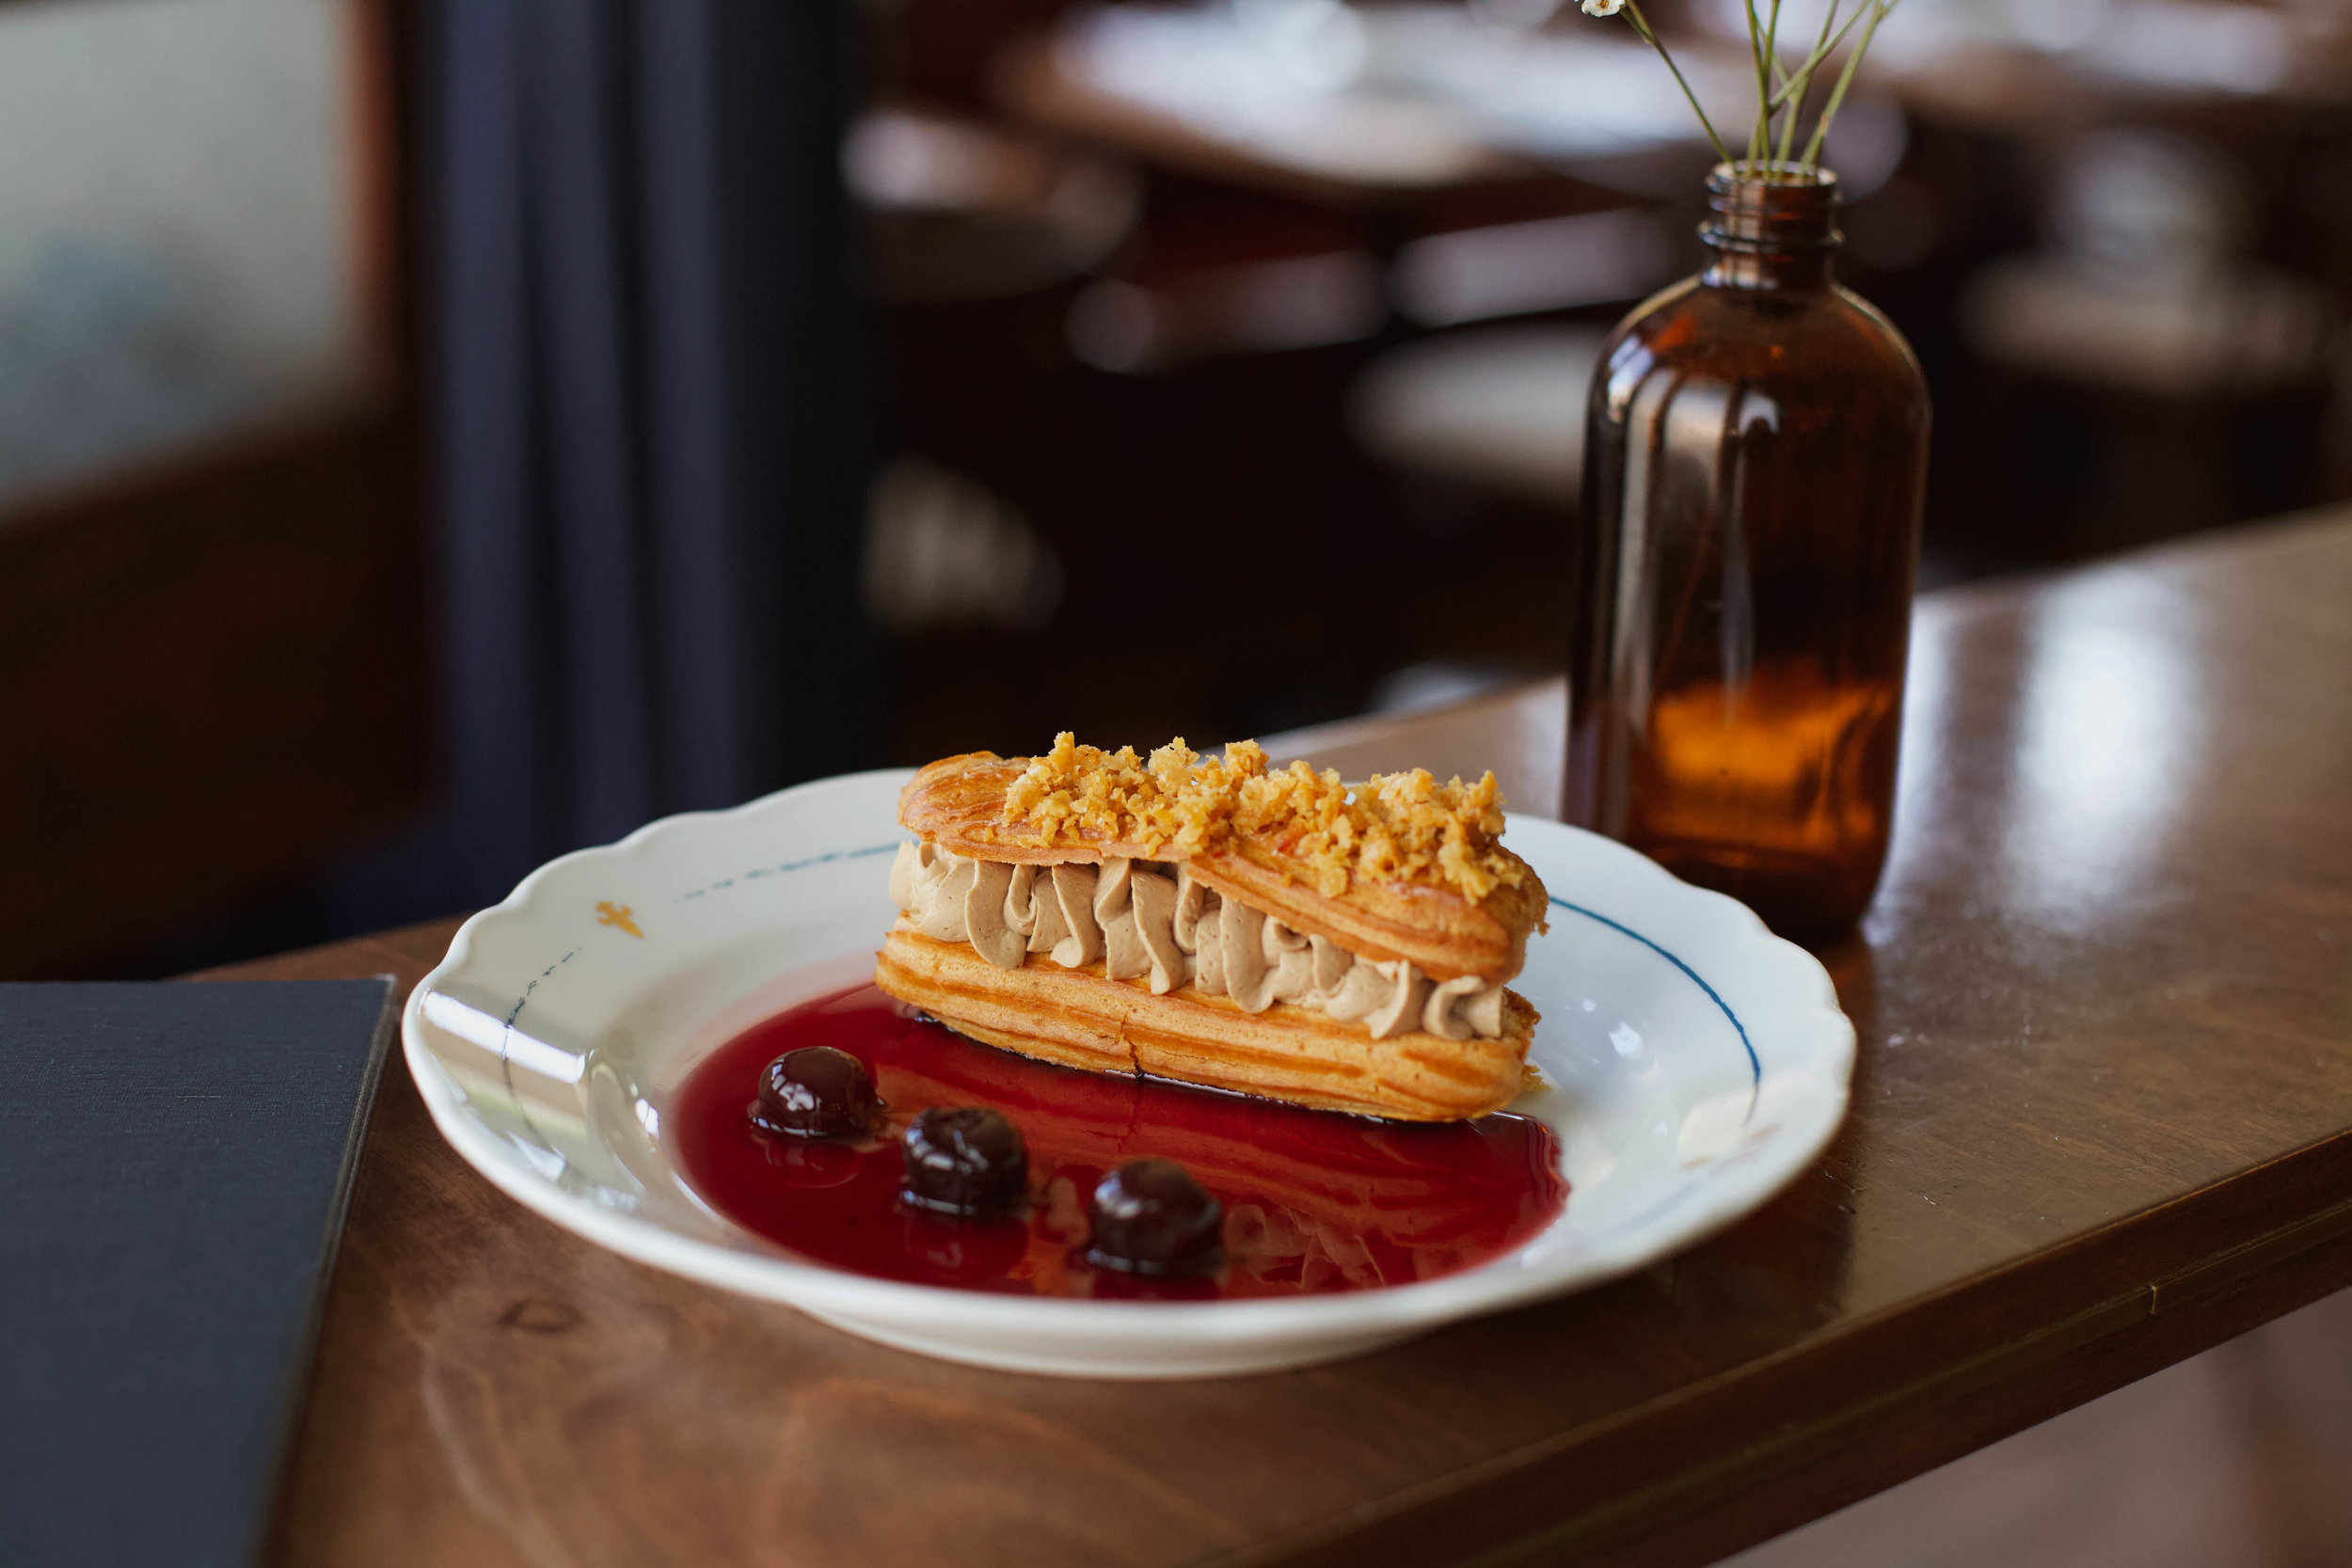 St. Lawrence  - July 29th, 2019 - RAILTOWNWhile out East, Québécois fare has been given its place on stage by the famed duo behind Joe Beef, on the West Coast, French dining all too often refers to another continent. Chef J.C. Poirier of Ask For Luigi had to do some digging to decide what direction to take this new menu in—and the city is lucky he looked to his home province. Leaving dainty behind, St. Lawrence leans to the rich and heavy. French countryside cooking became the mode d'emploi and the restaurant's catchphrase was born: Cuisine de campagne: rustic, generous, and honest.